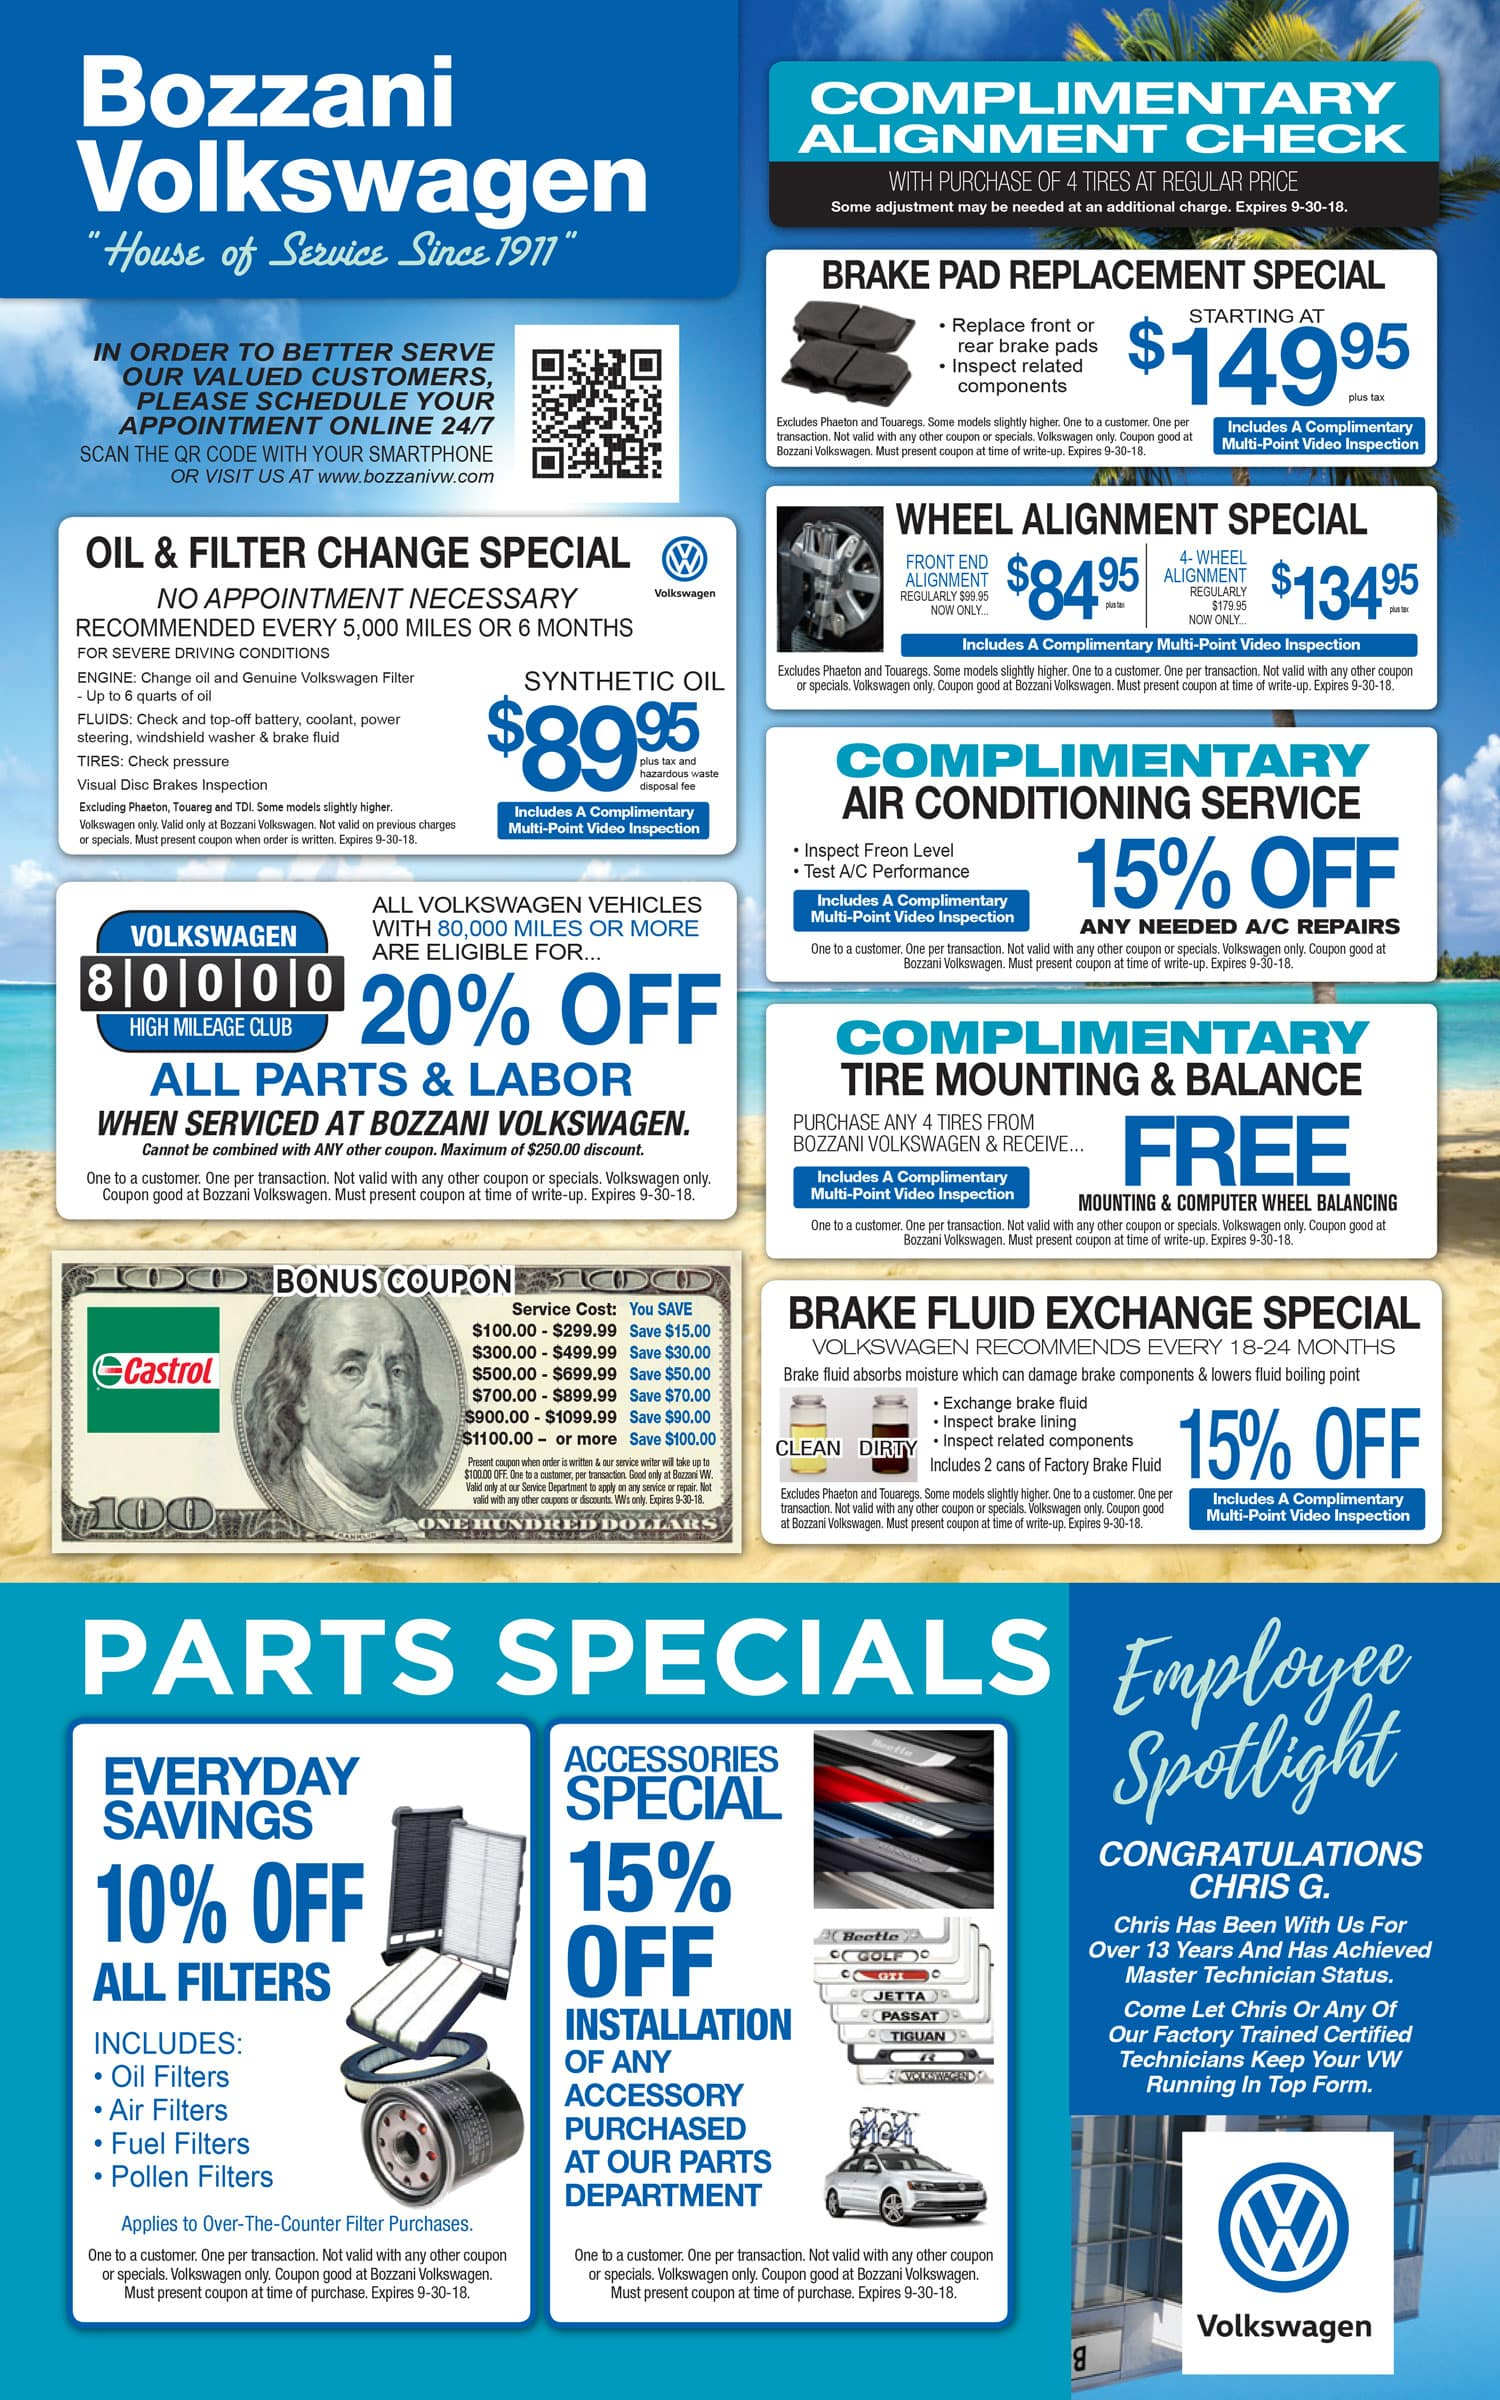 Bozzani VW Service Coupons